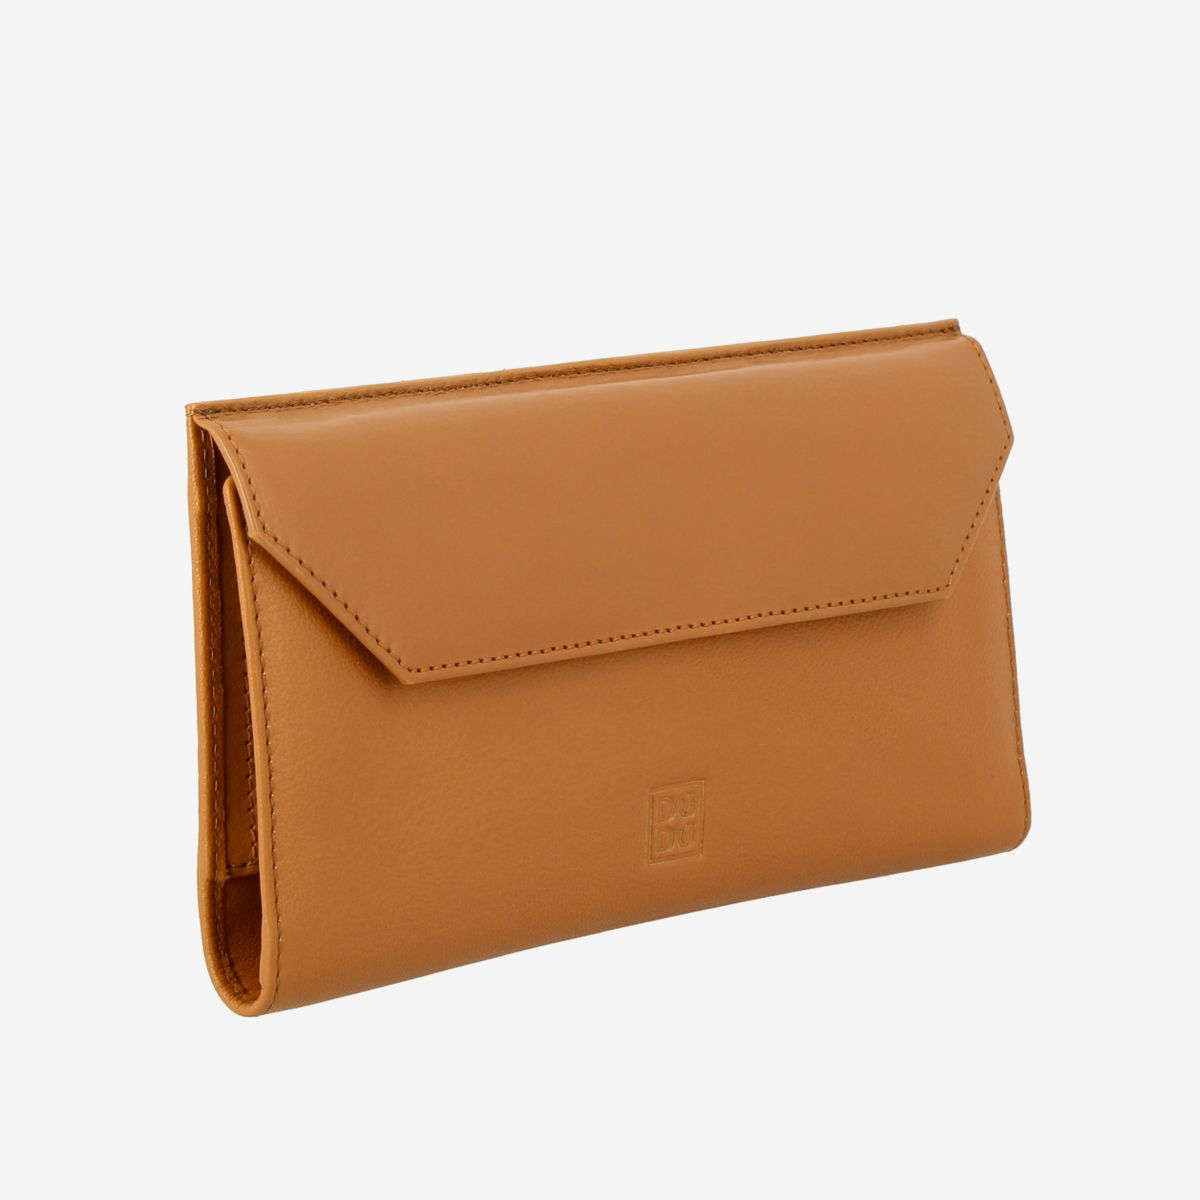 Ladies Envelope Leather Clutch Wallet Purse  - Buff